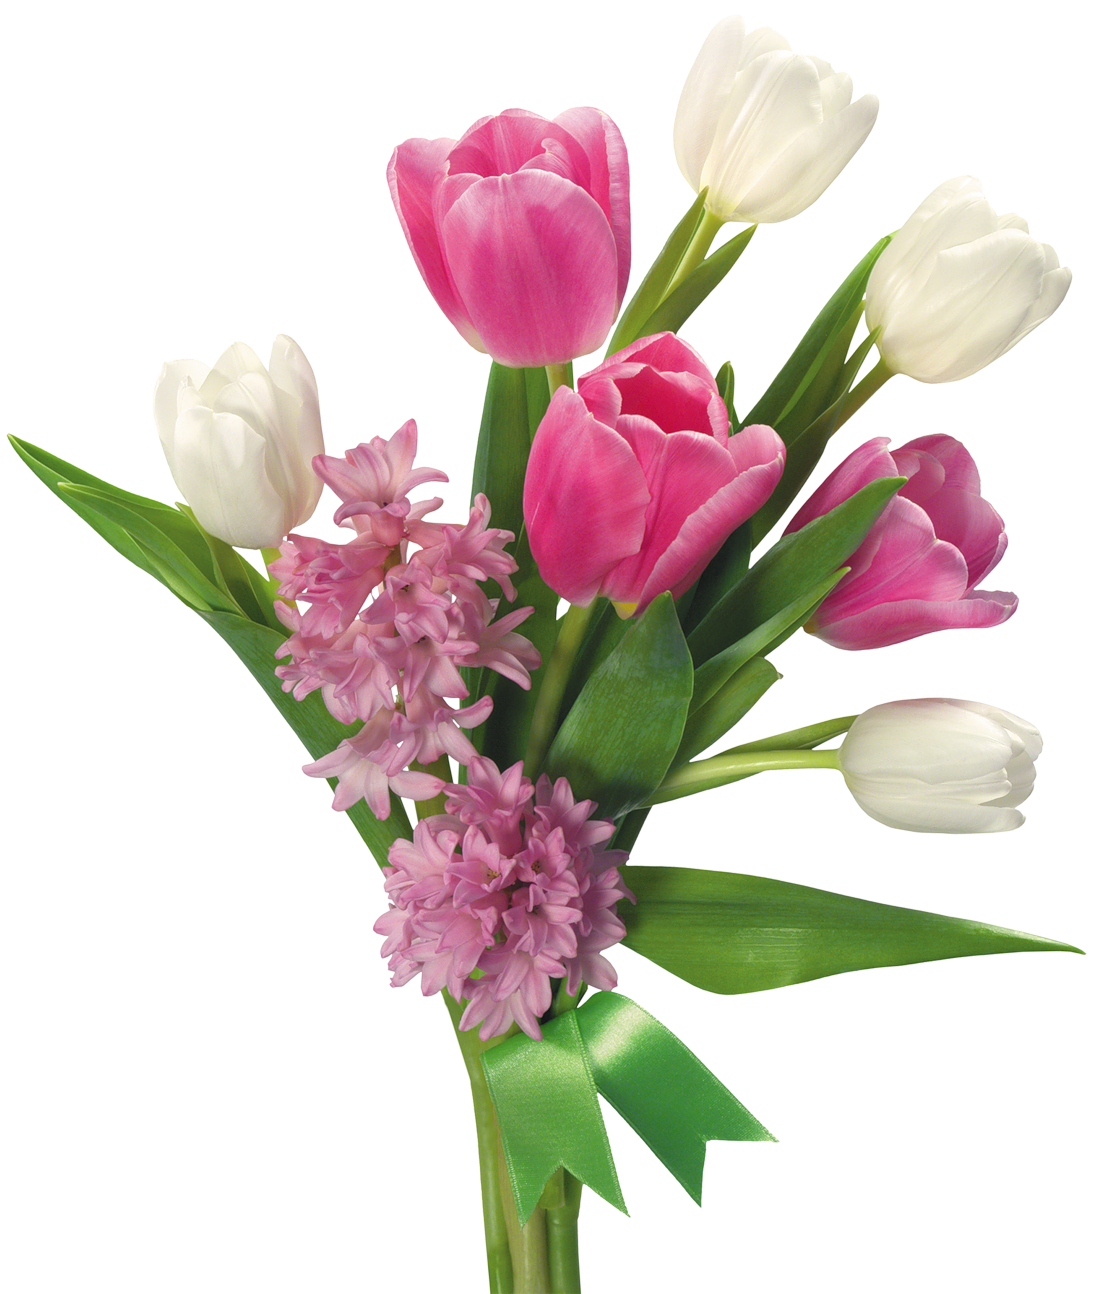 Flower Hd Png Transparent Flower Hd Png Images Pluspng